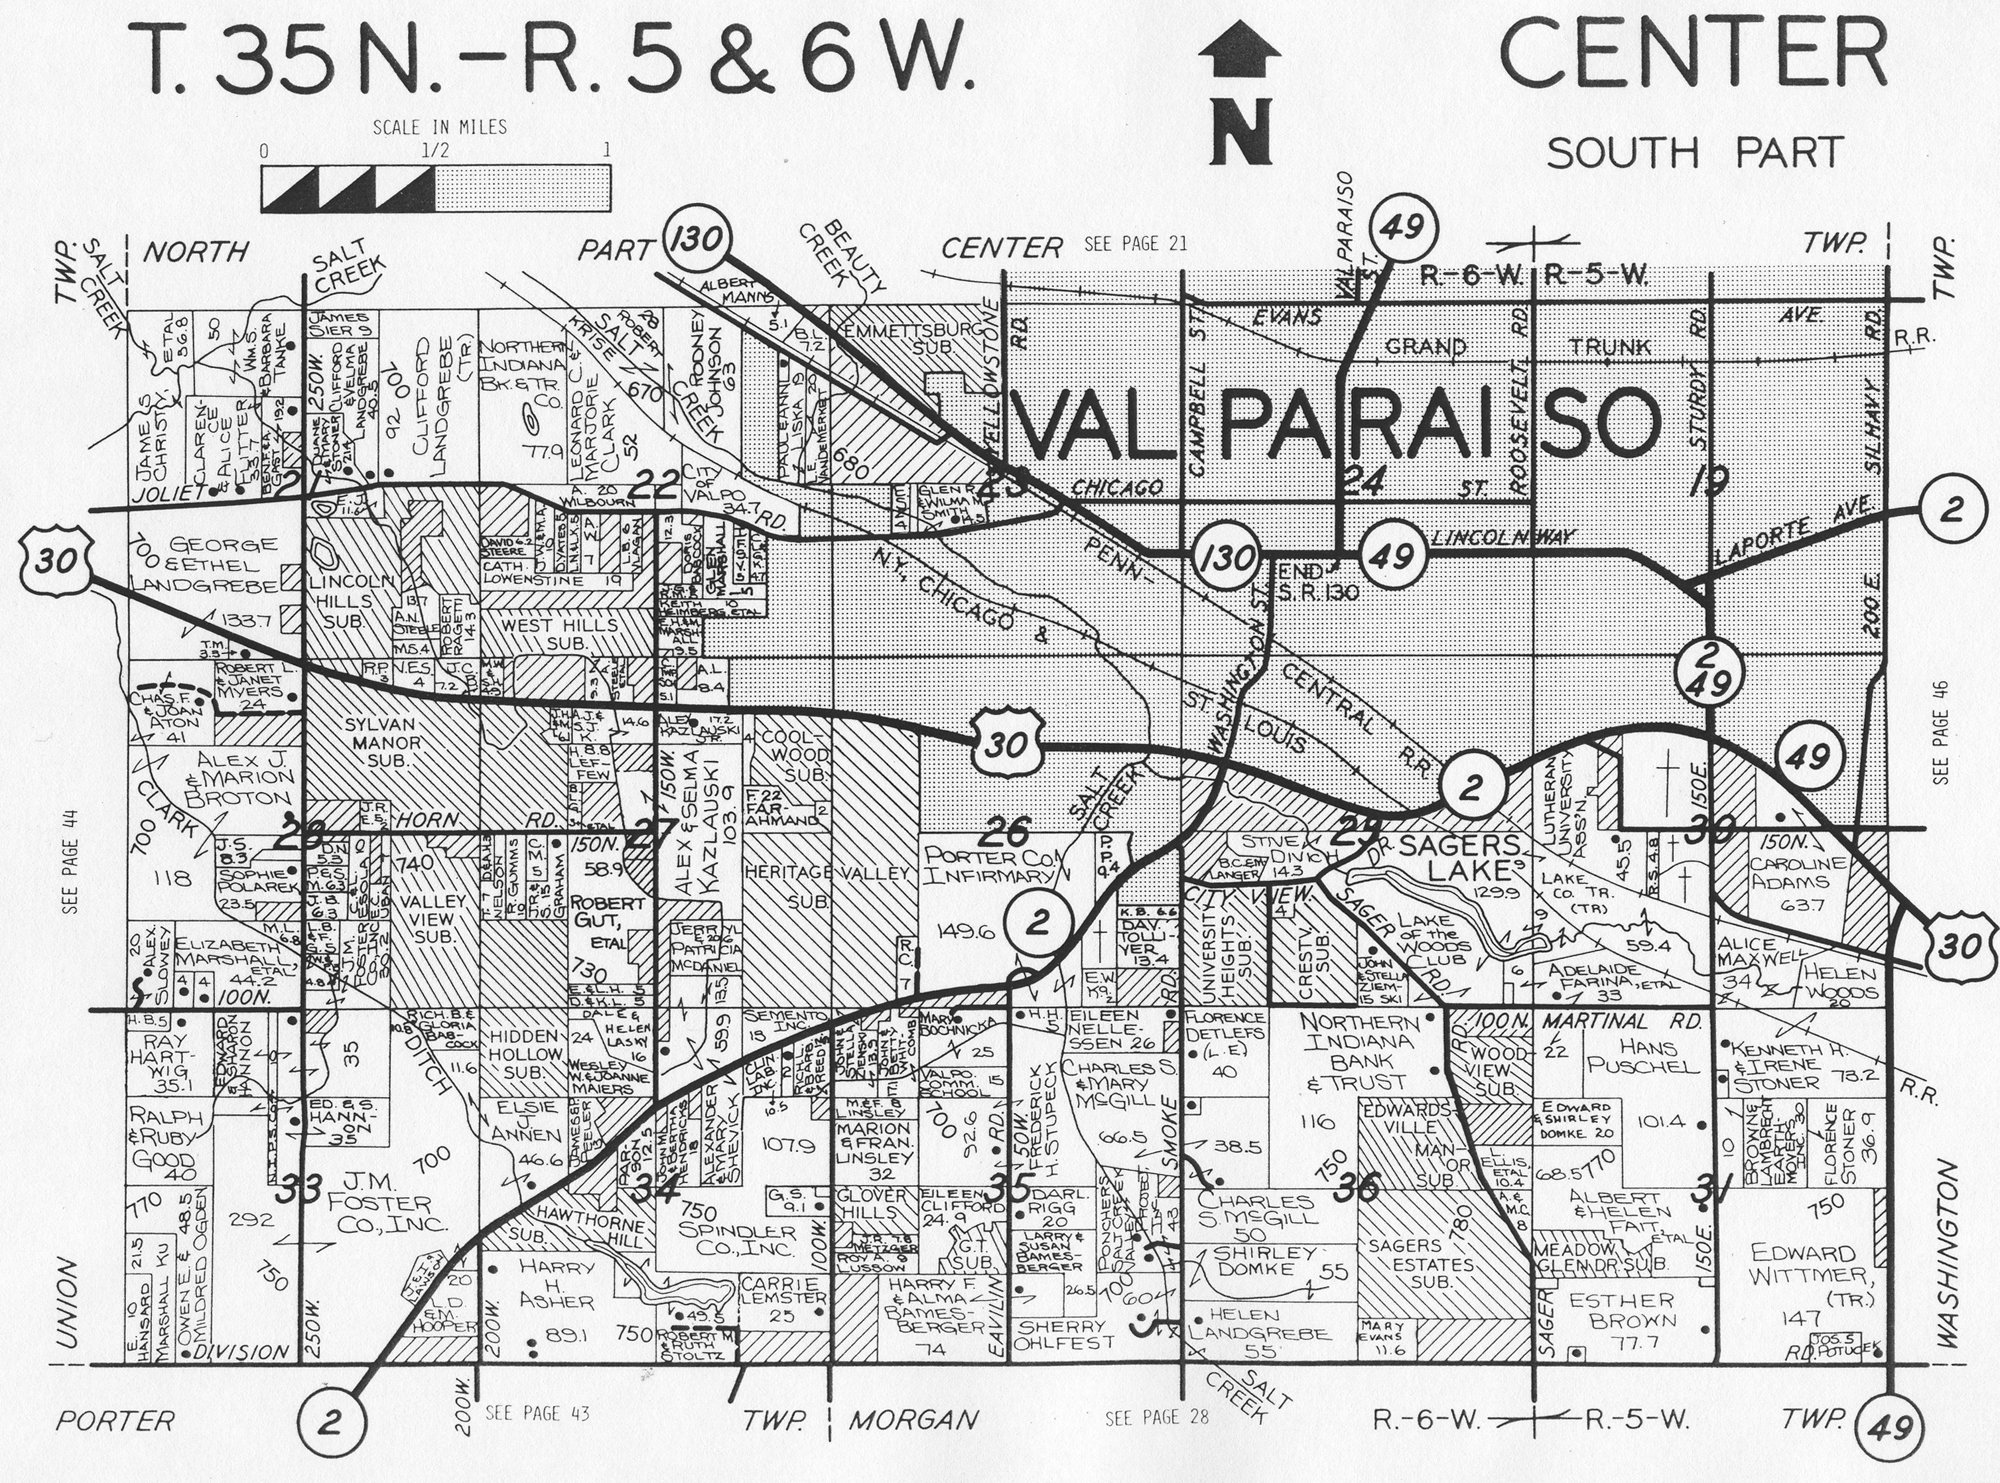 Porter Indiana Map.Porter County Indiana Genweb Center Township Maps